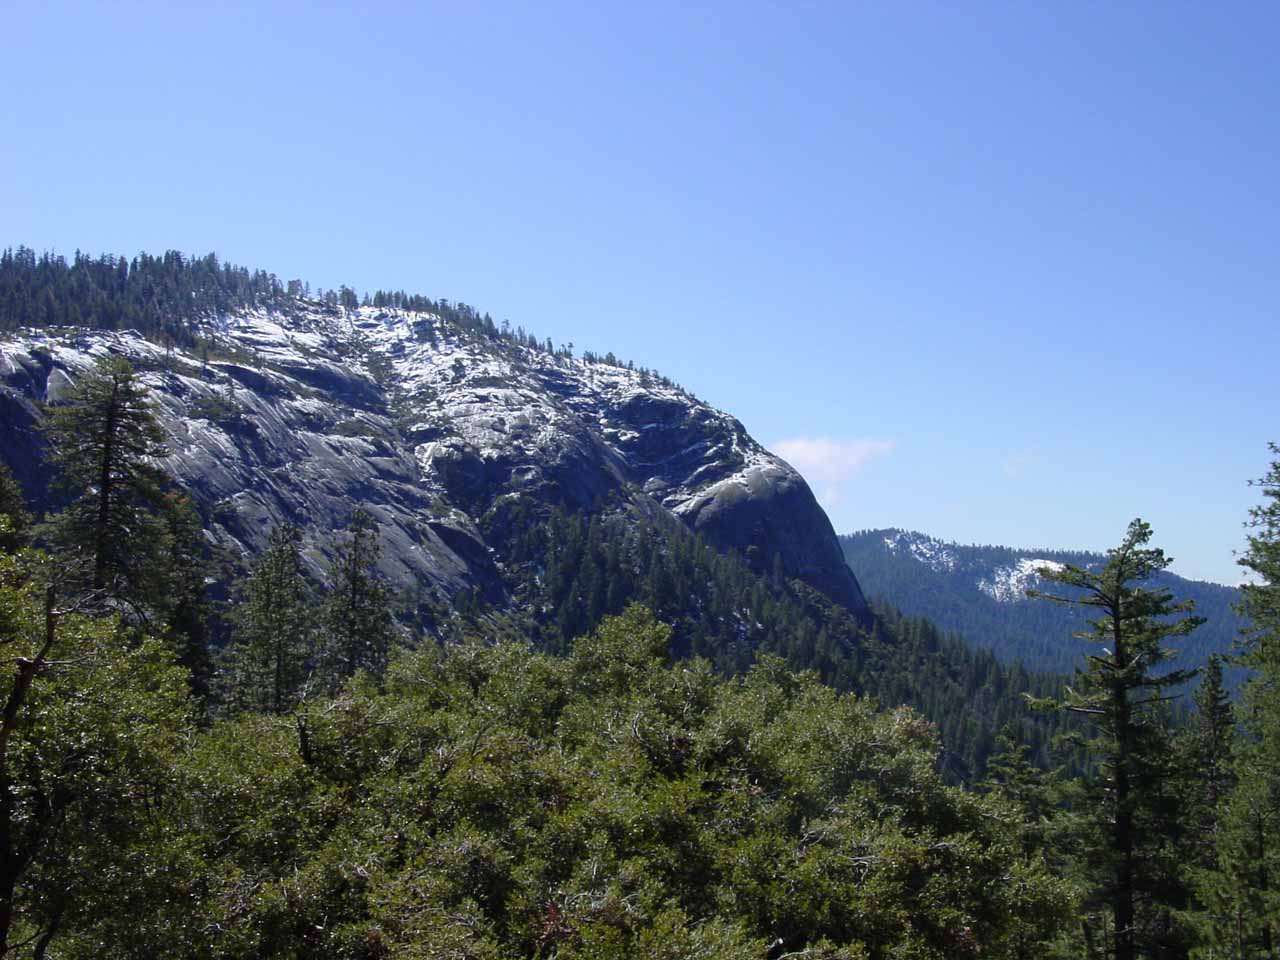 The Wawona area (let alone the southern part of Yosemite National Park) was generally much quieter than say Yosemite Valley so we got to enjoy Wawona Dome (shown here) in relative peace